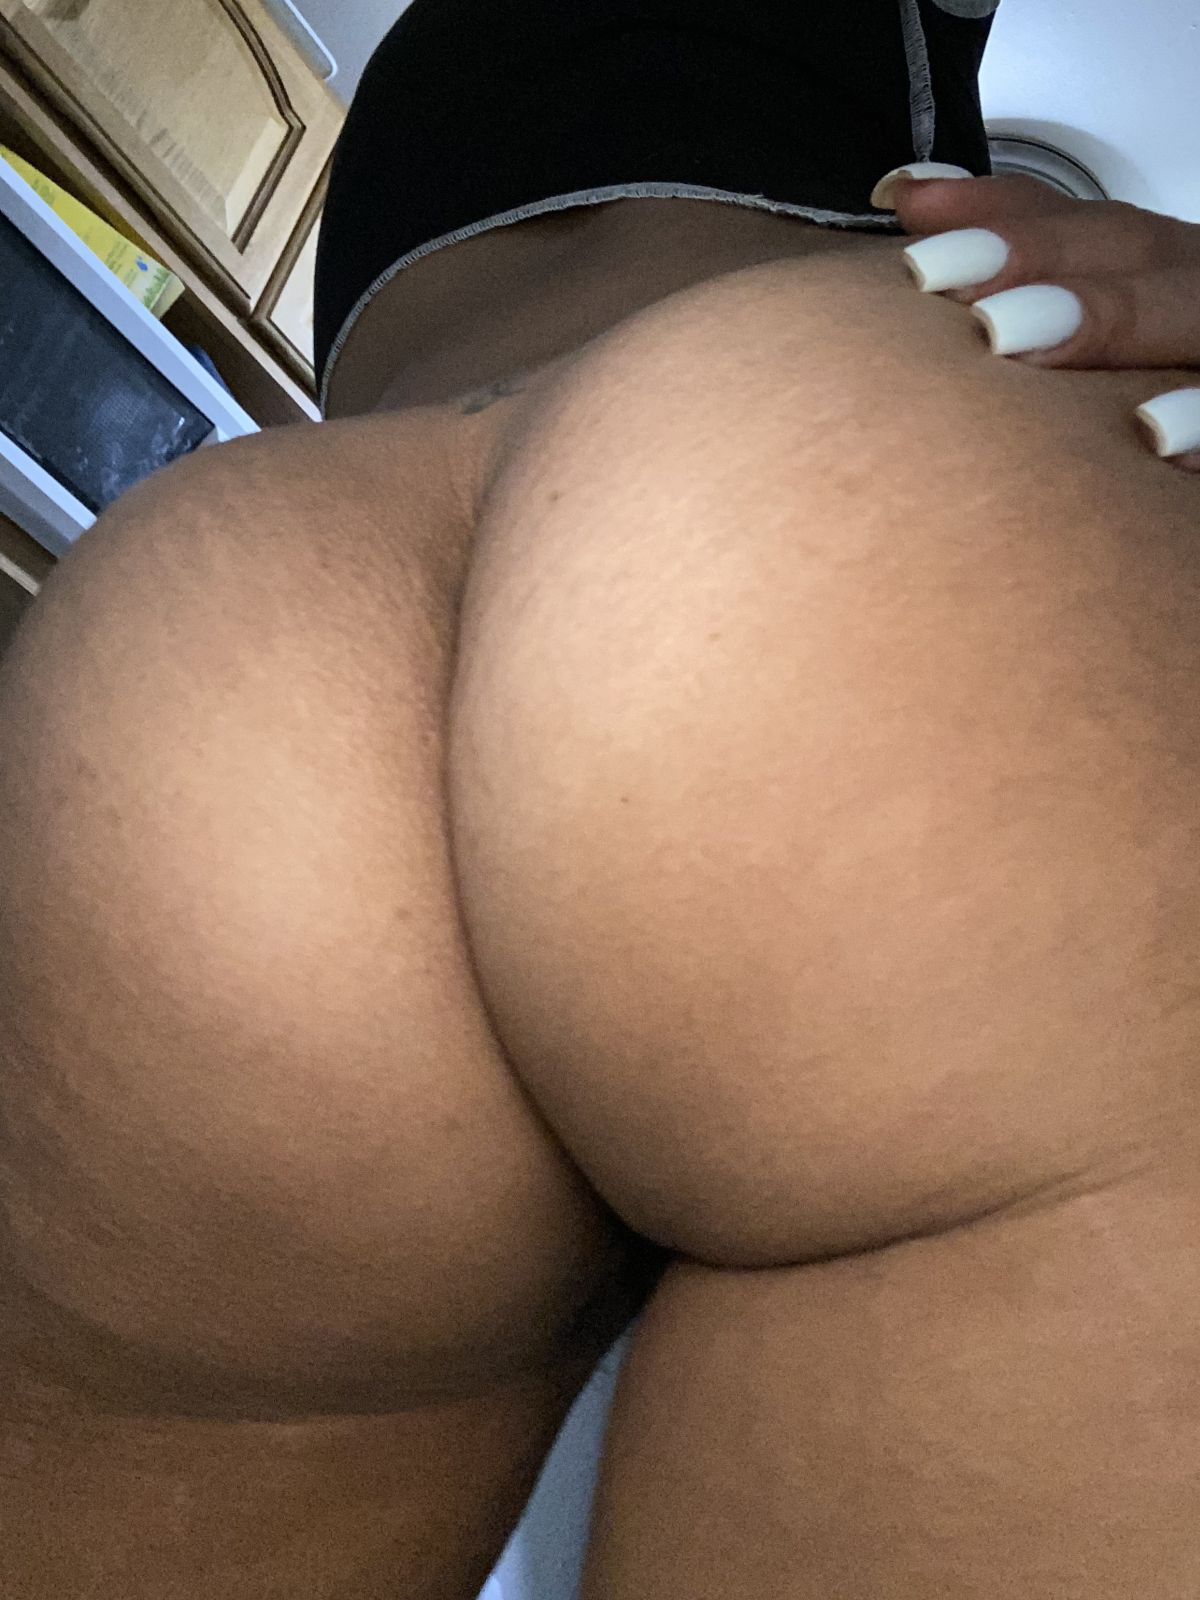 Lala mooree photos and videos onlyfans leaked